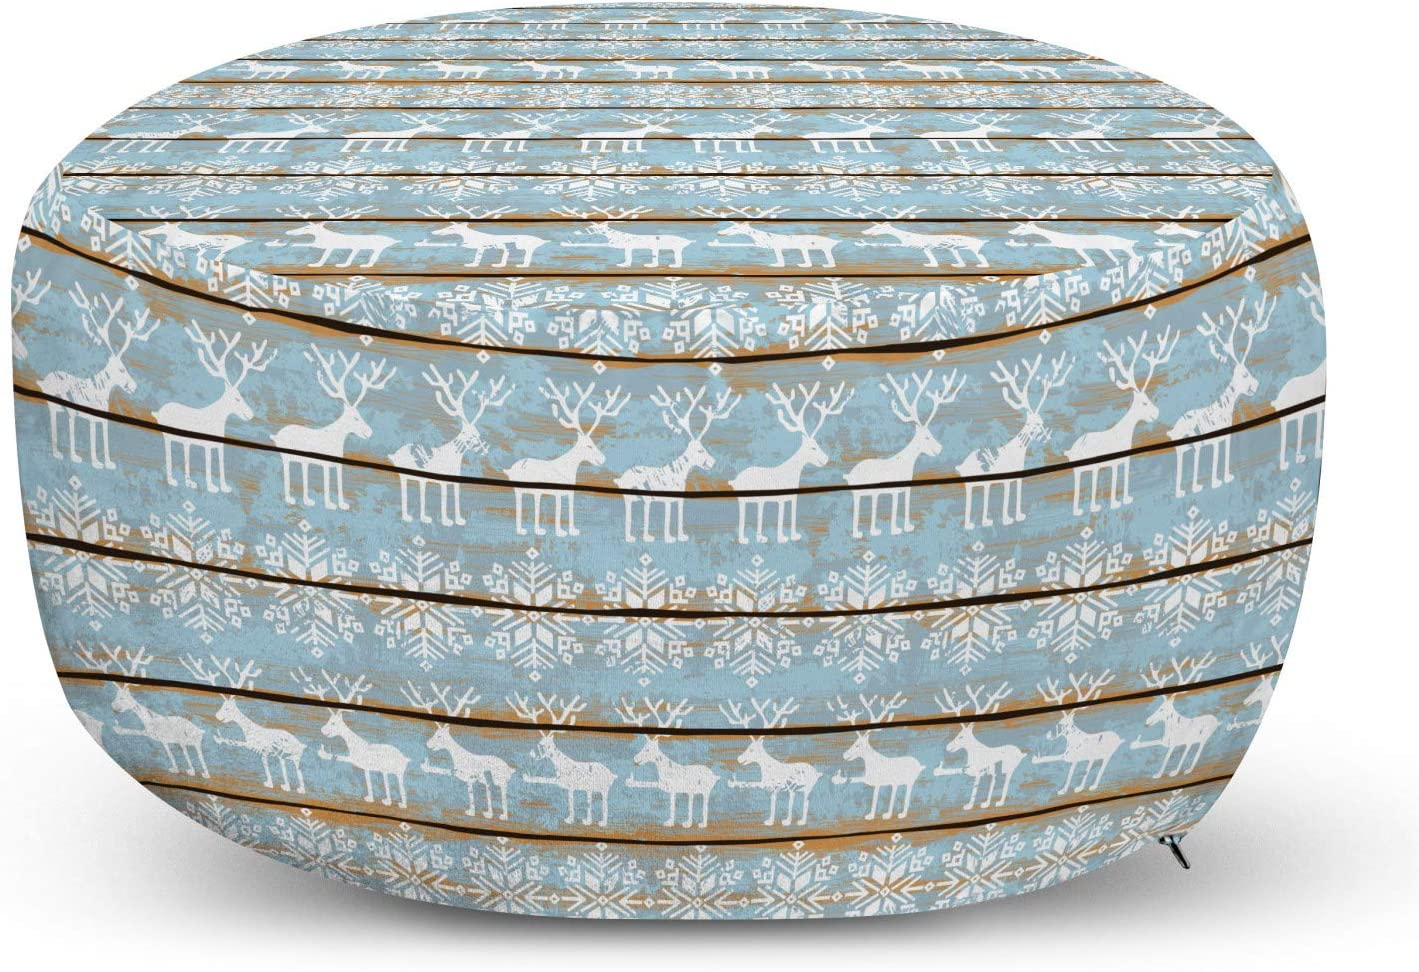 Lunarable Rustic Elk Ottoman Pouf, Winter Themed Pattern with Snowflakes and Deer on Wood Planks, Decorative Soft Foot Rest with Removable Cover Living Room and Bedroom, Apricot Sky